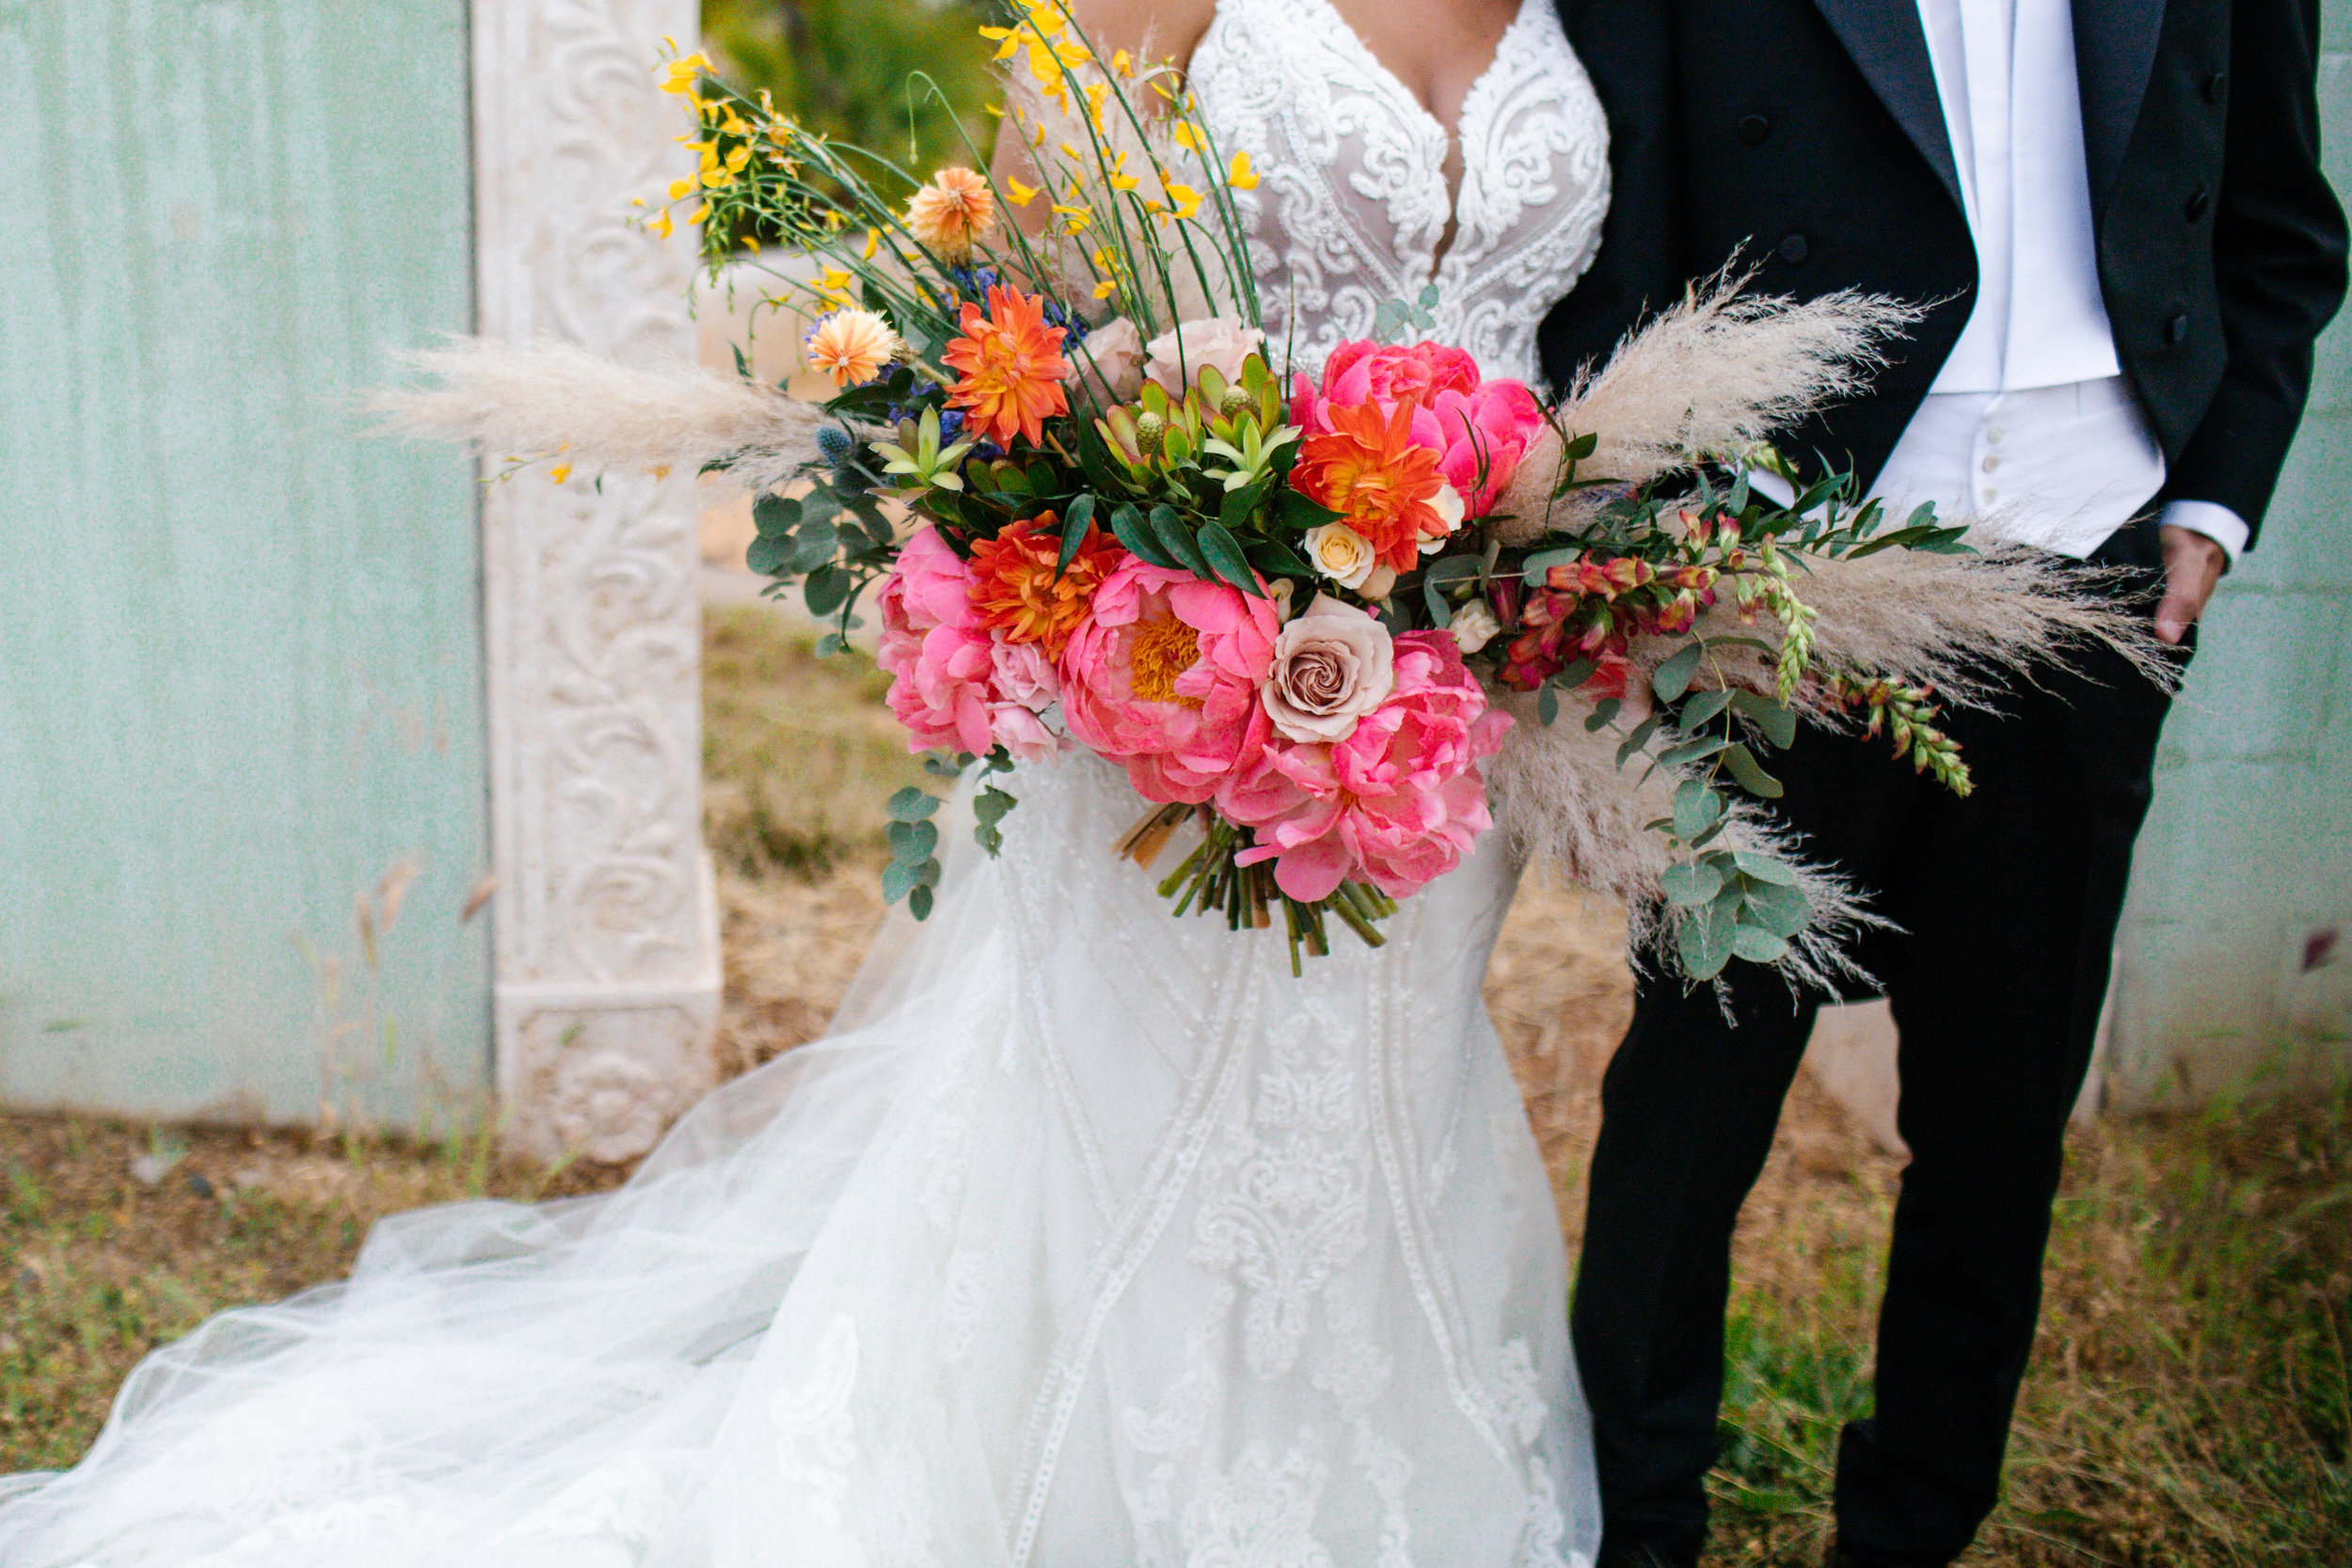 The Wedding Course - Expertise and Guidance in Planning The Wedding Day of Your DreamsCOMING SOON